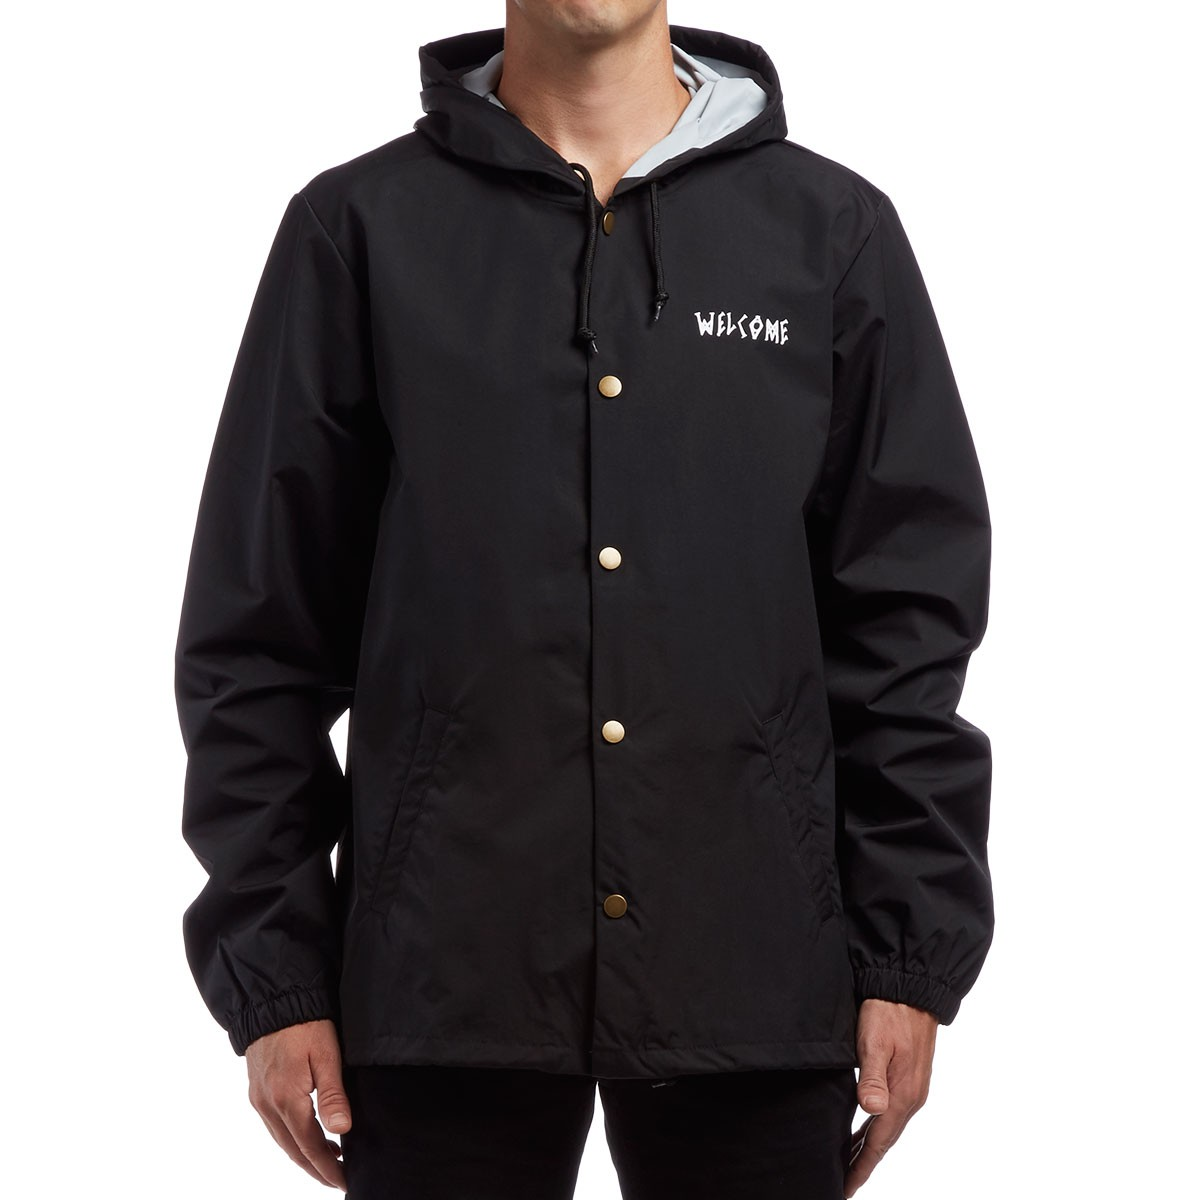 Welcome Tracking Hooded Coaches Jacket - Black/White